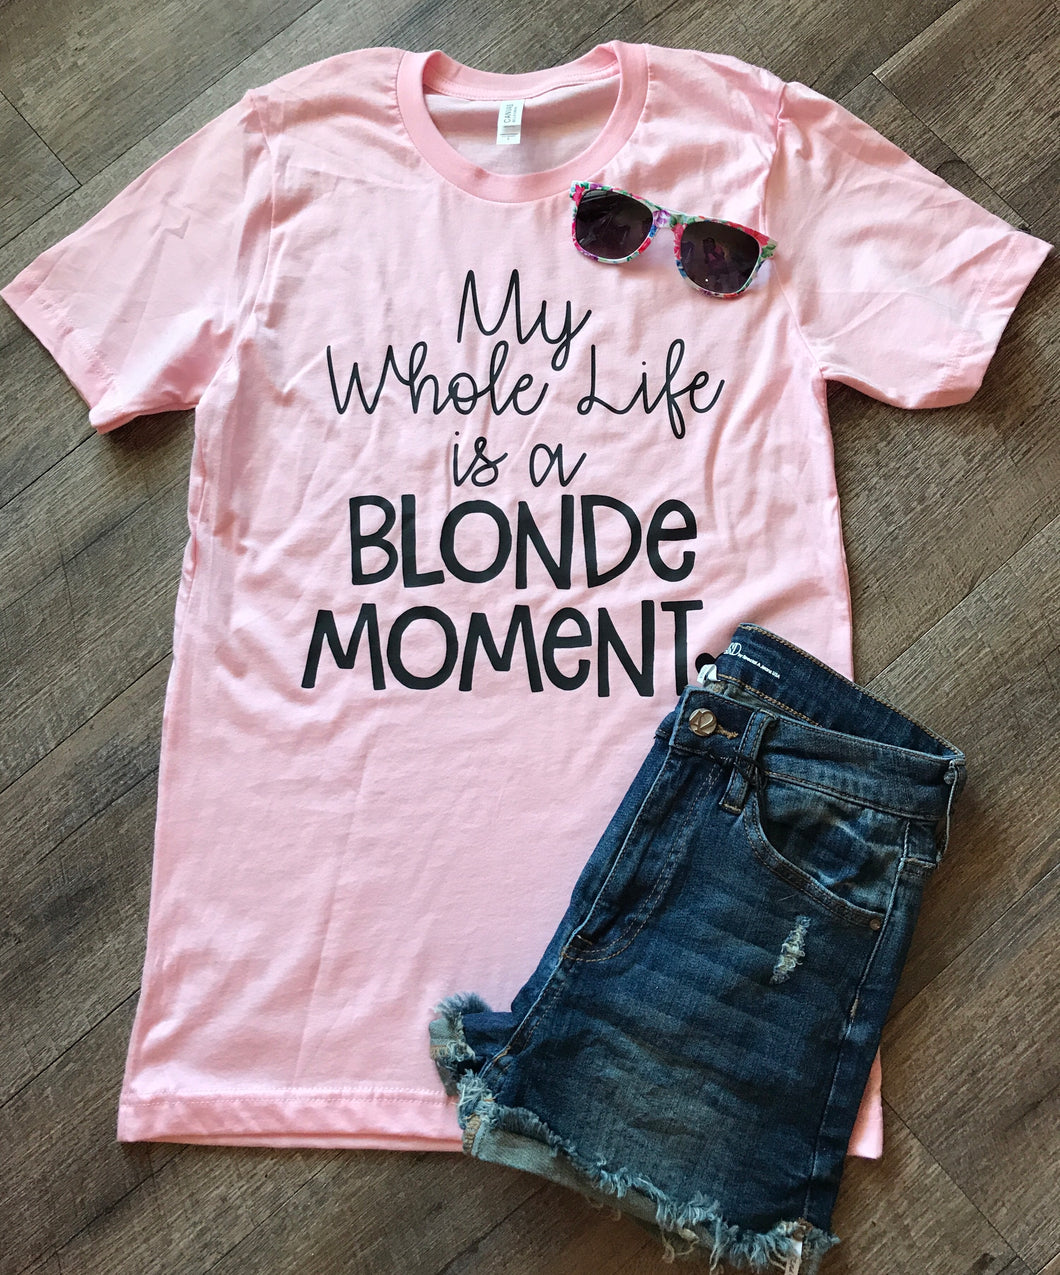 My whole life is a blonde moment custom funny tee. - Mavictoria Designs Hot Press Express